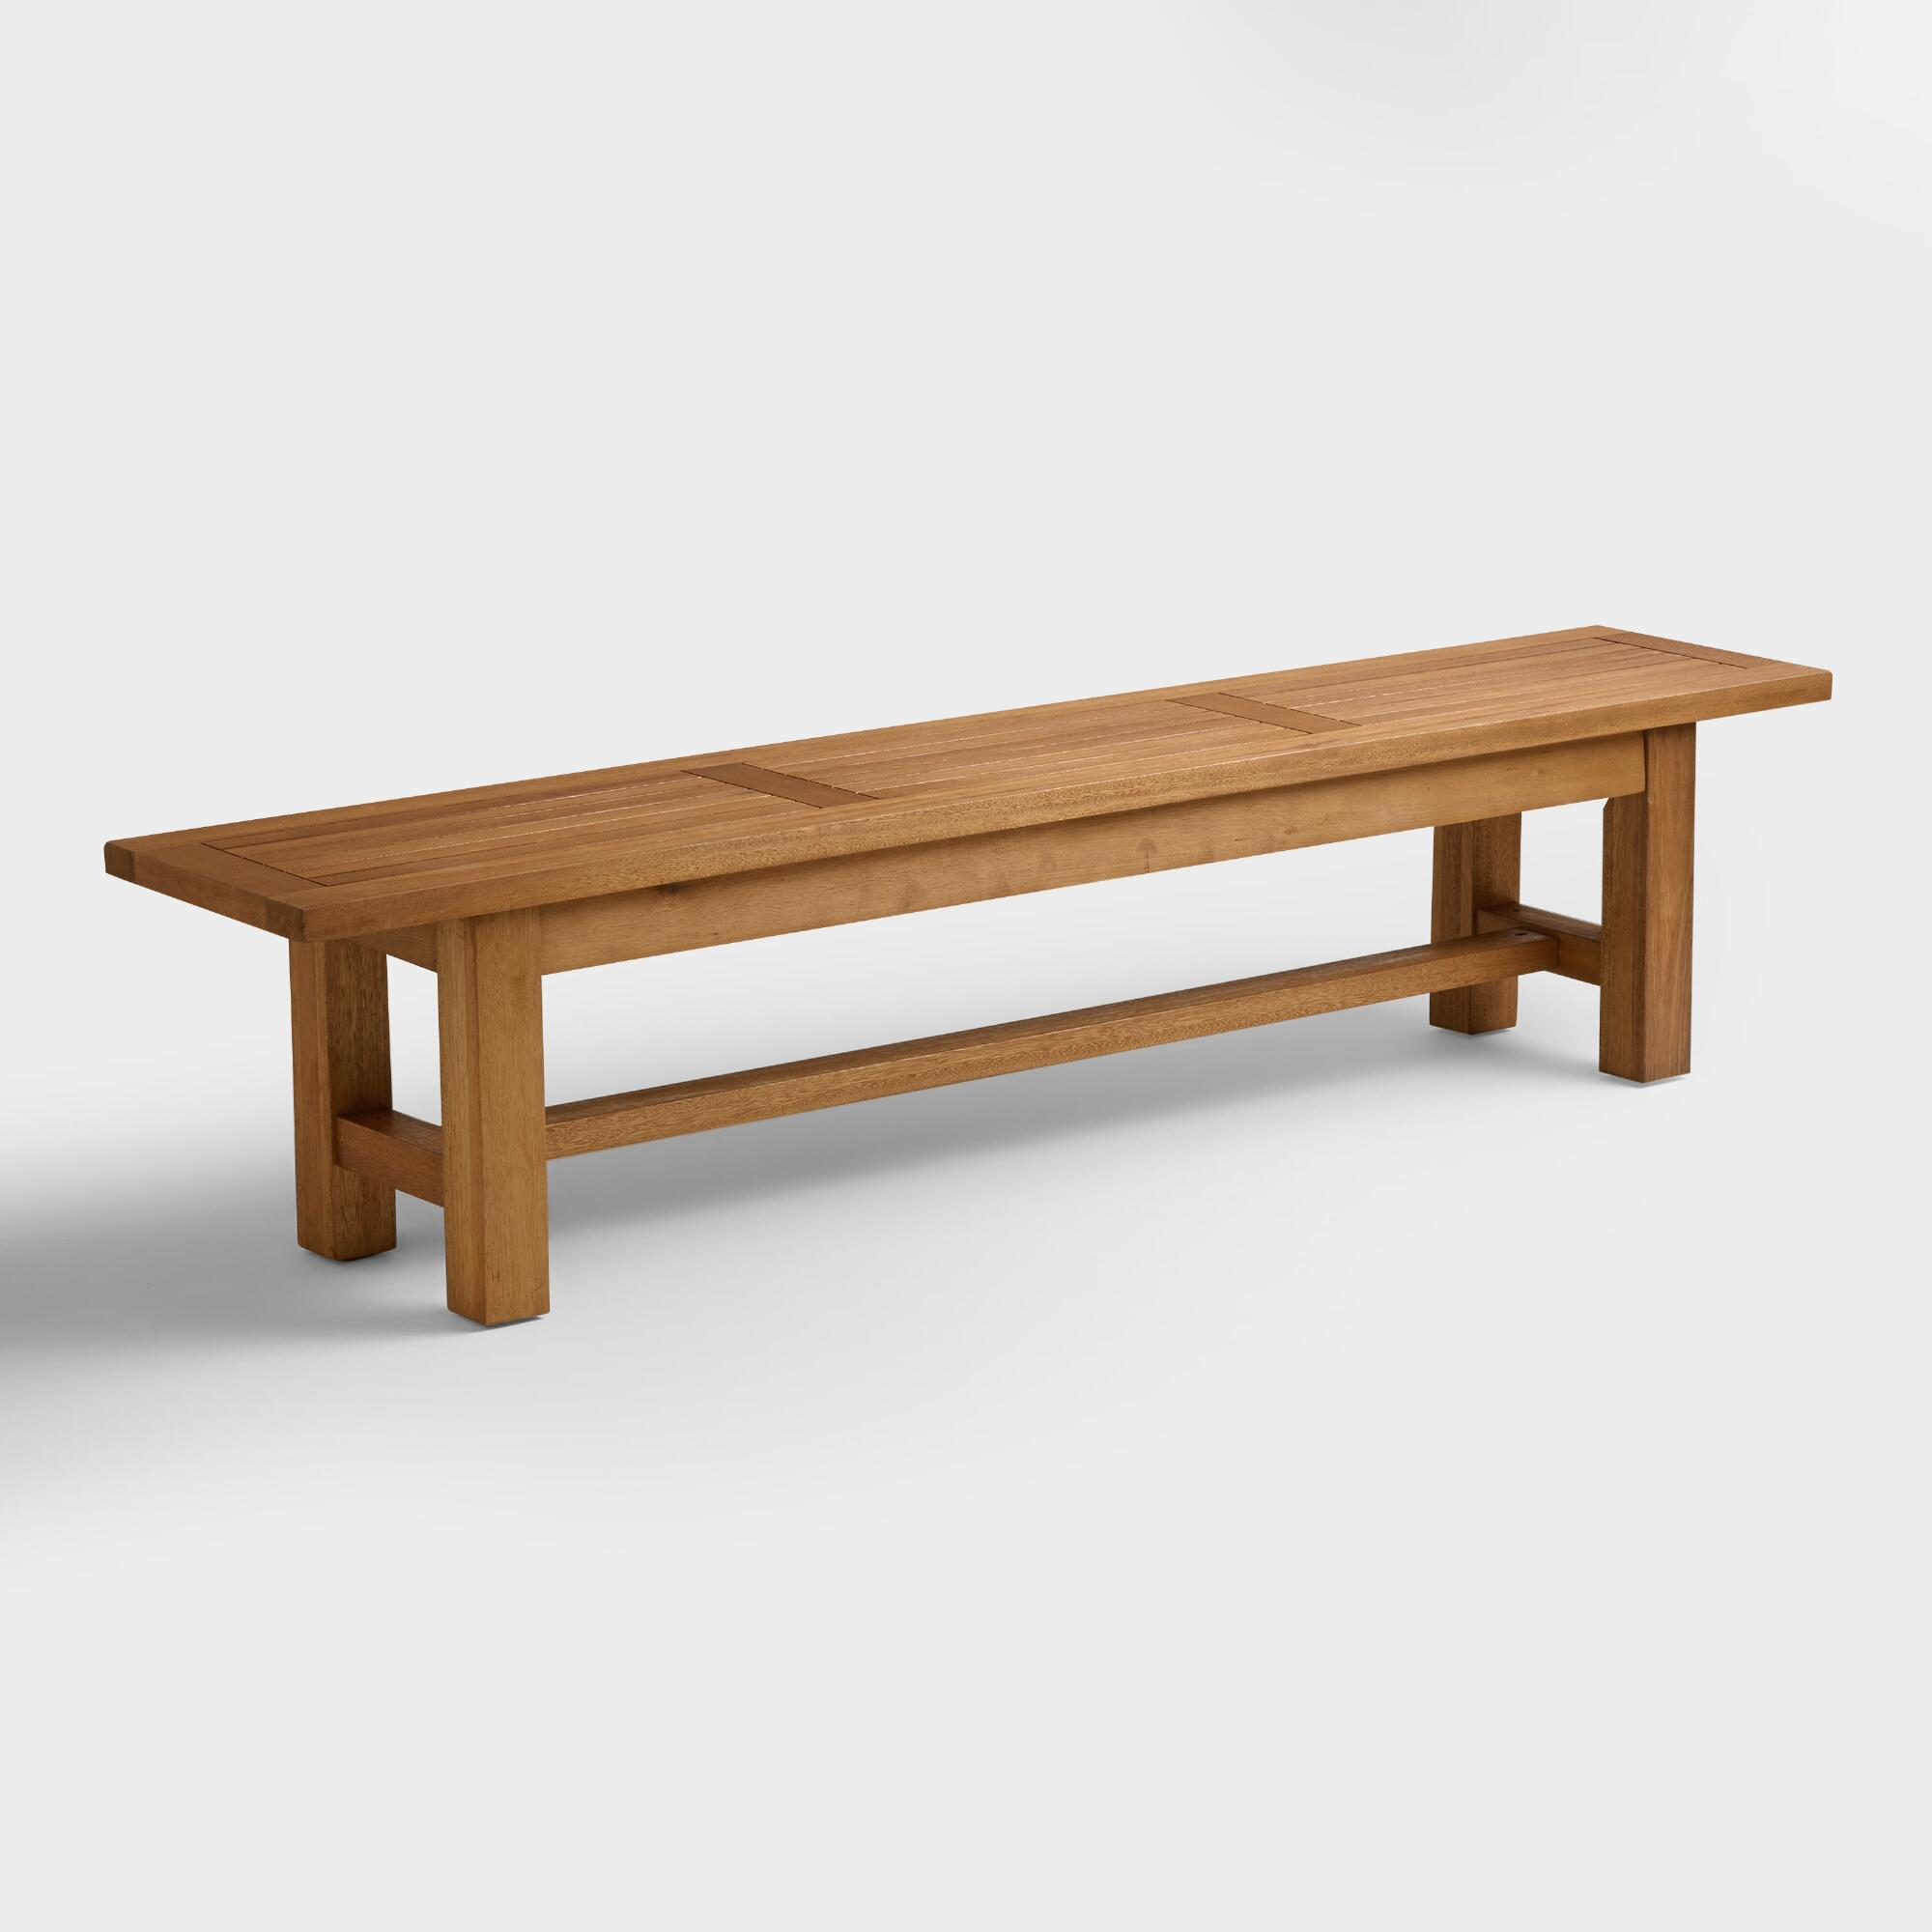 Wooden Patio Bench ~ Wood praiano outdoor dining bench world market